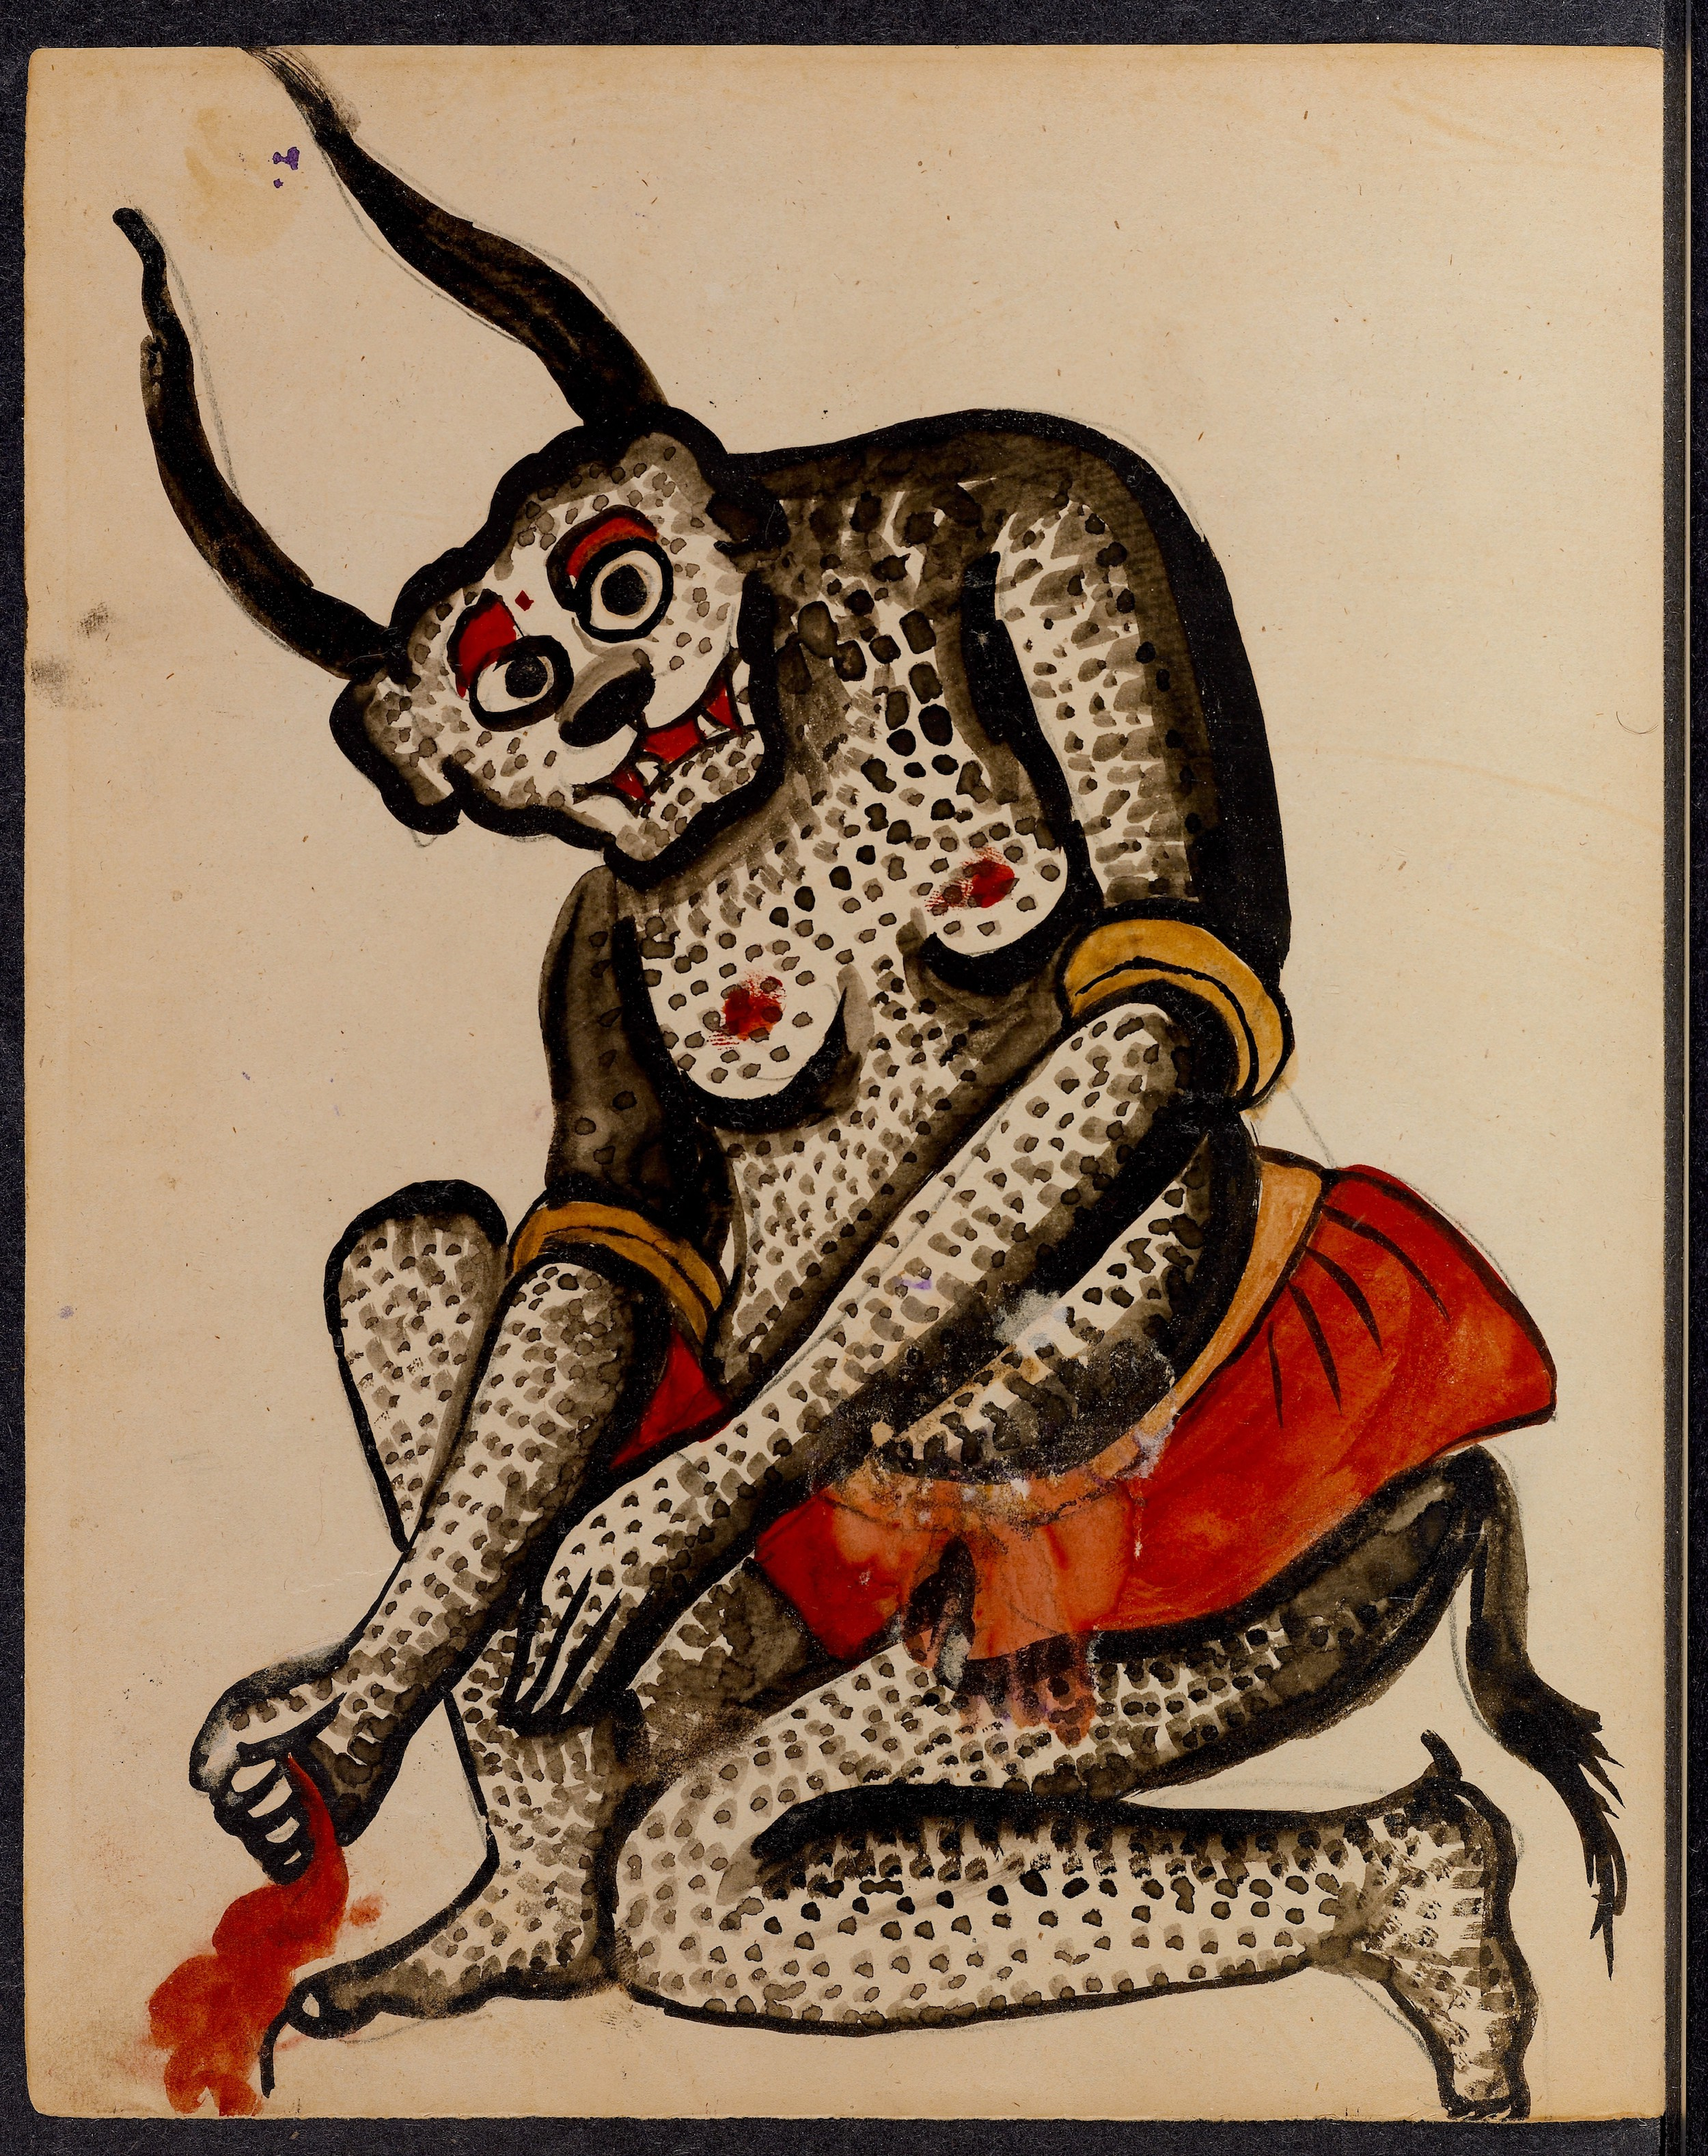 Iran Demons art book 20th Century Isfahan